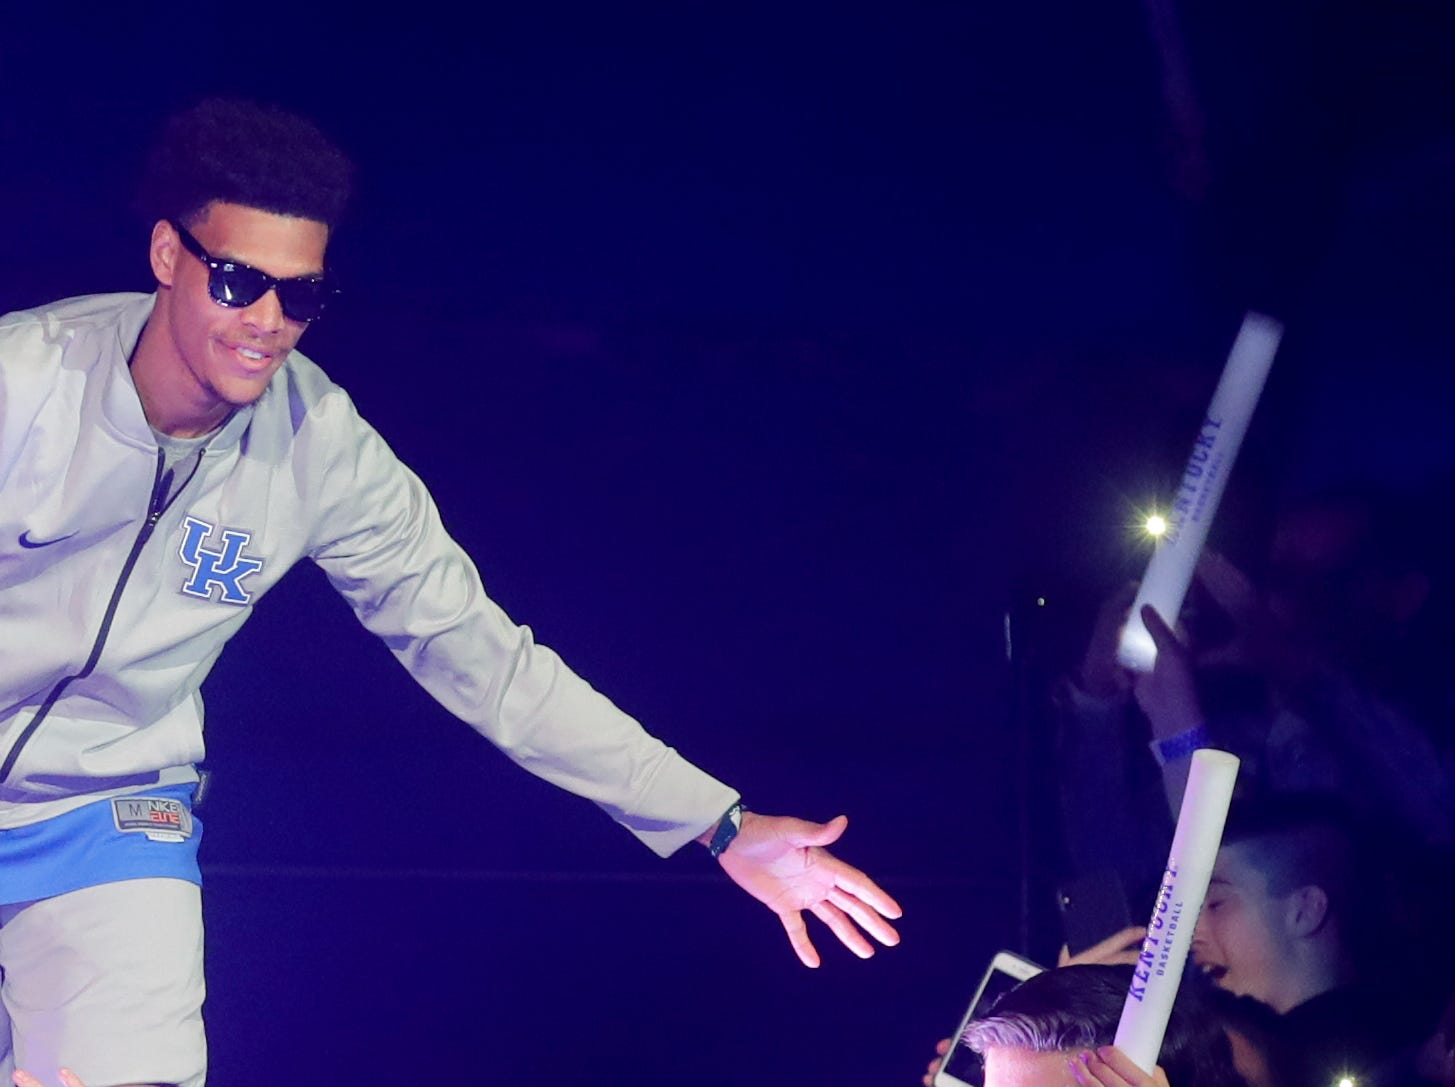 Kentucky Quade Green is introduced at Big Blue Madness in Lexington, Kentucky.